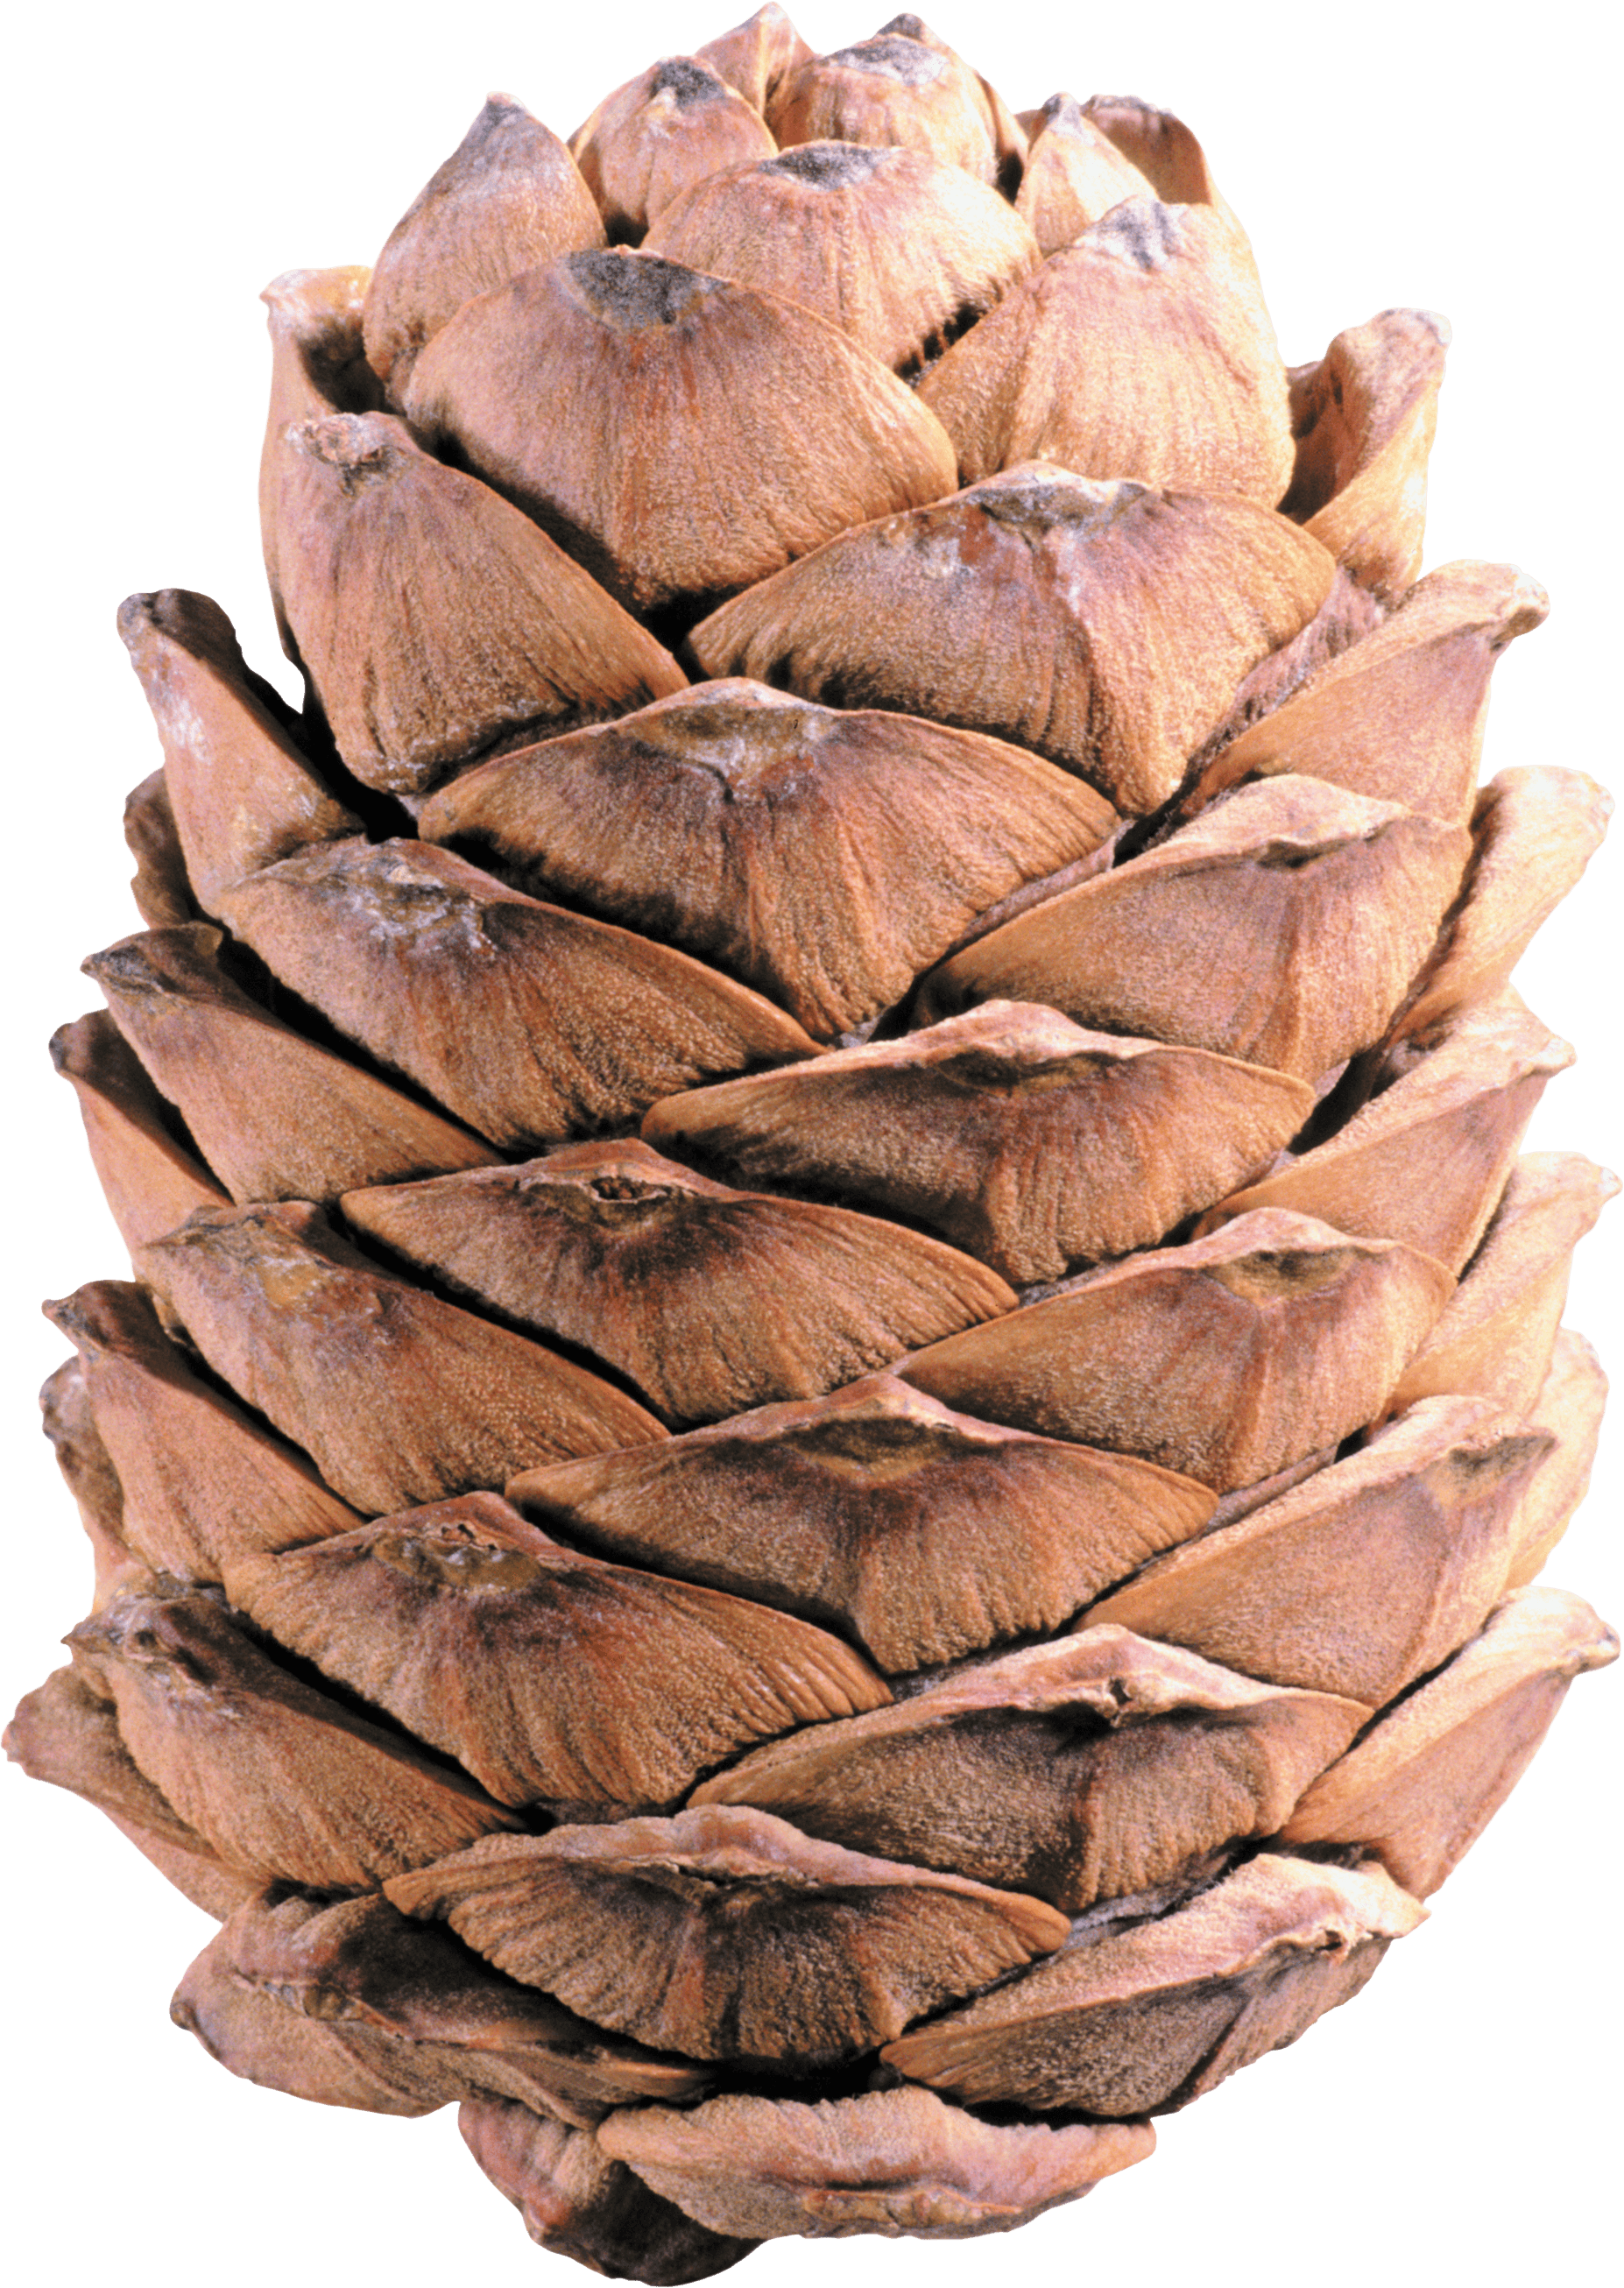 Light Brown Pine Cone - Pinecone HD PNG